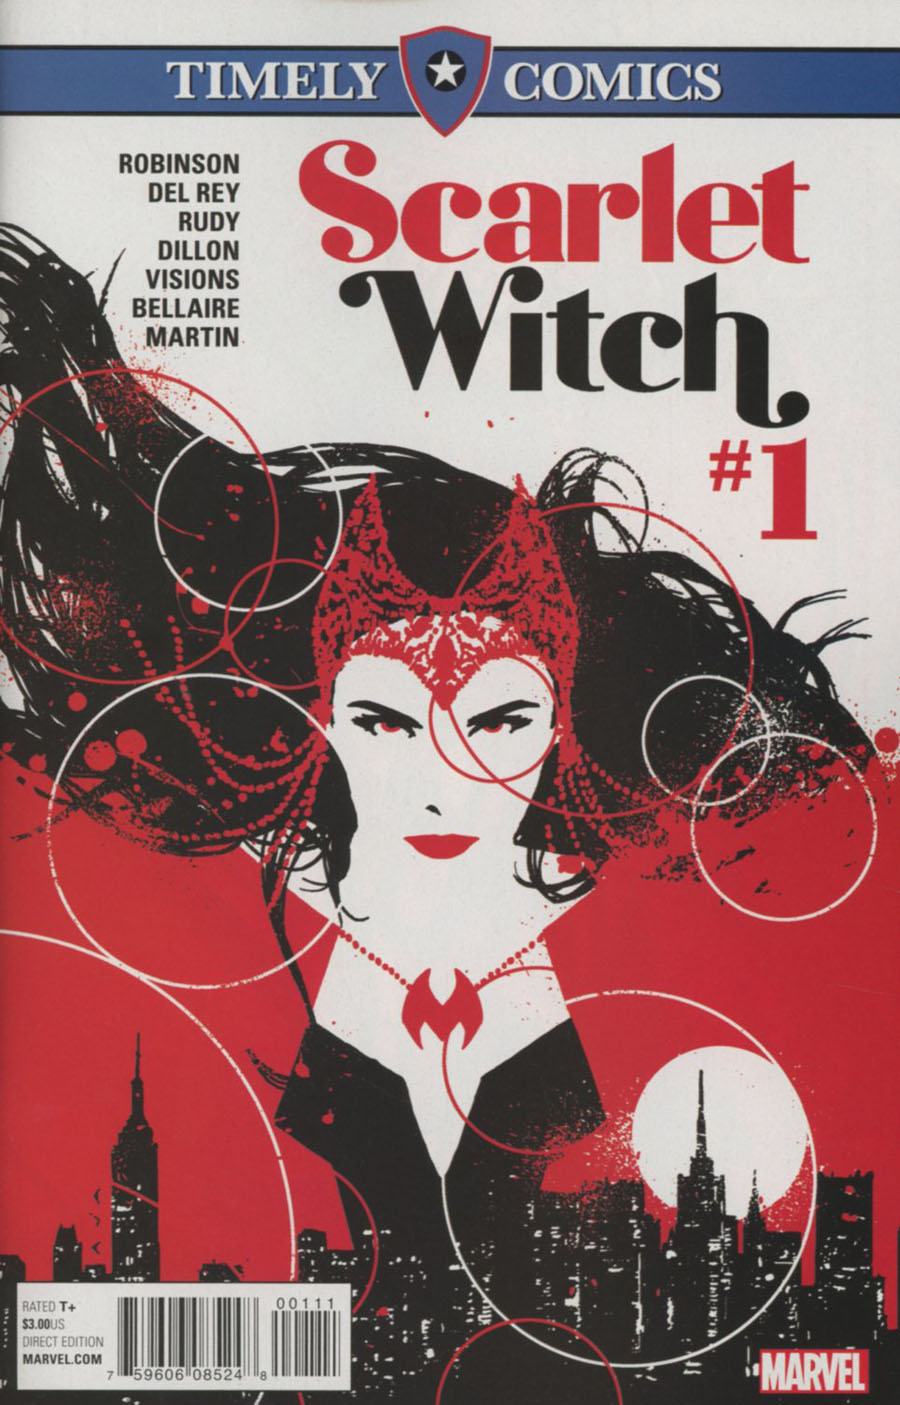 Timely Comics Scarlet Witch Vol 2 #1